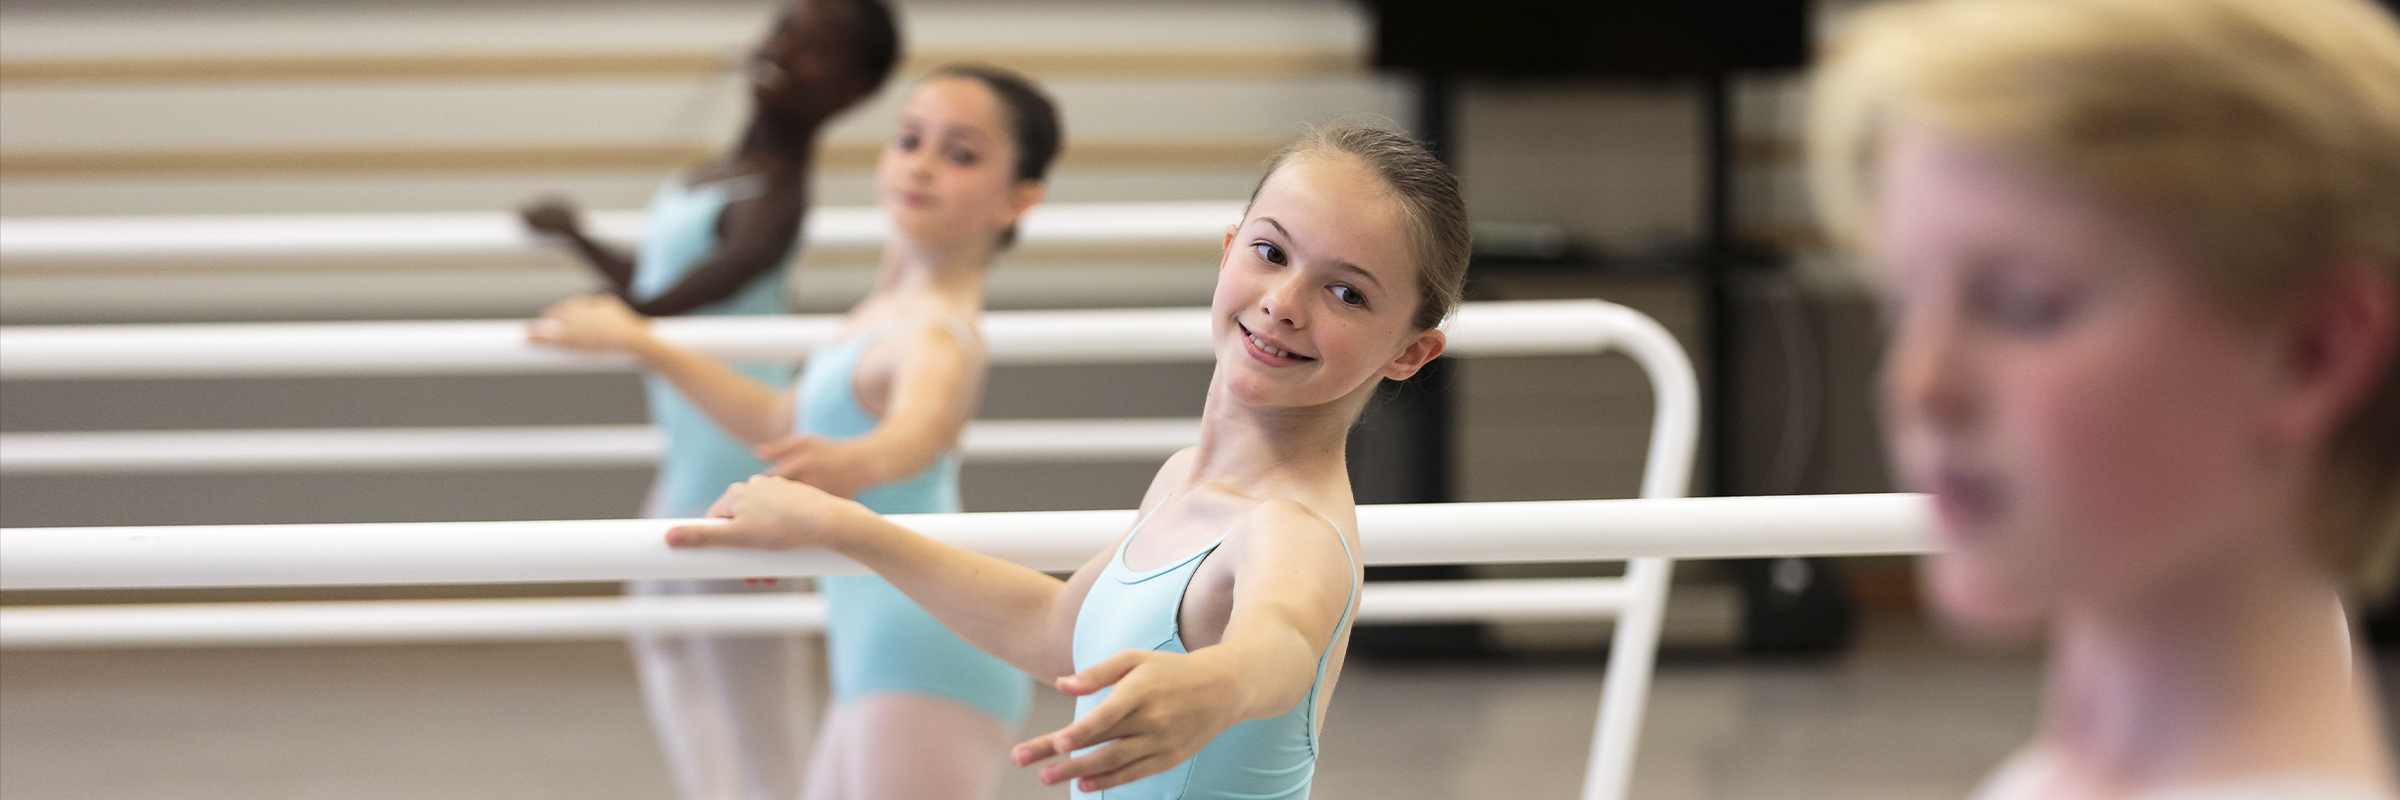 Scenes from San Francisco Ballet School's 2015 Summer Session. (© Chris Hardy)